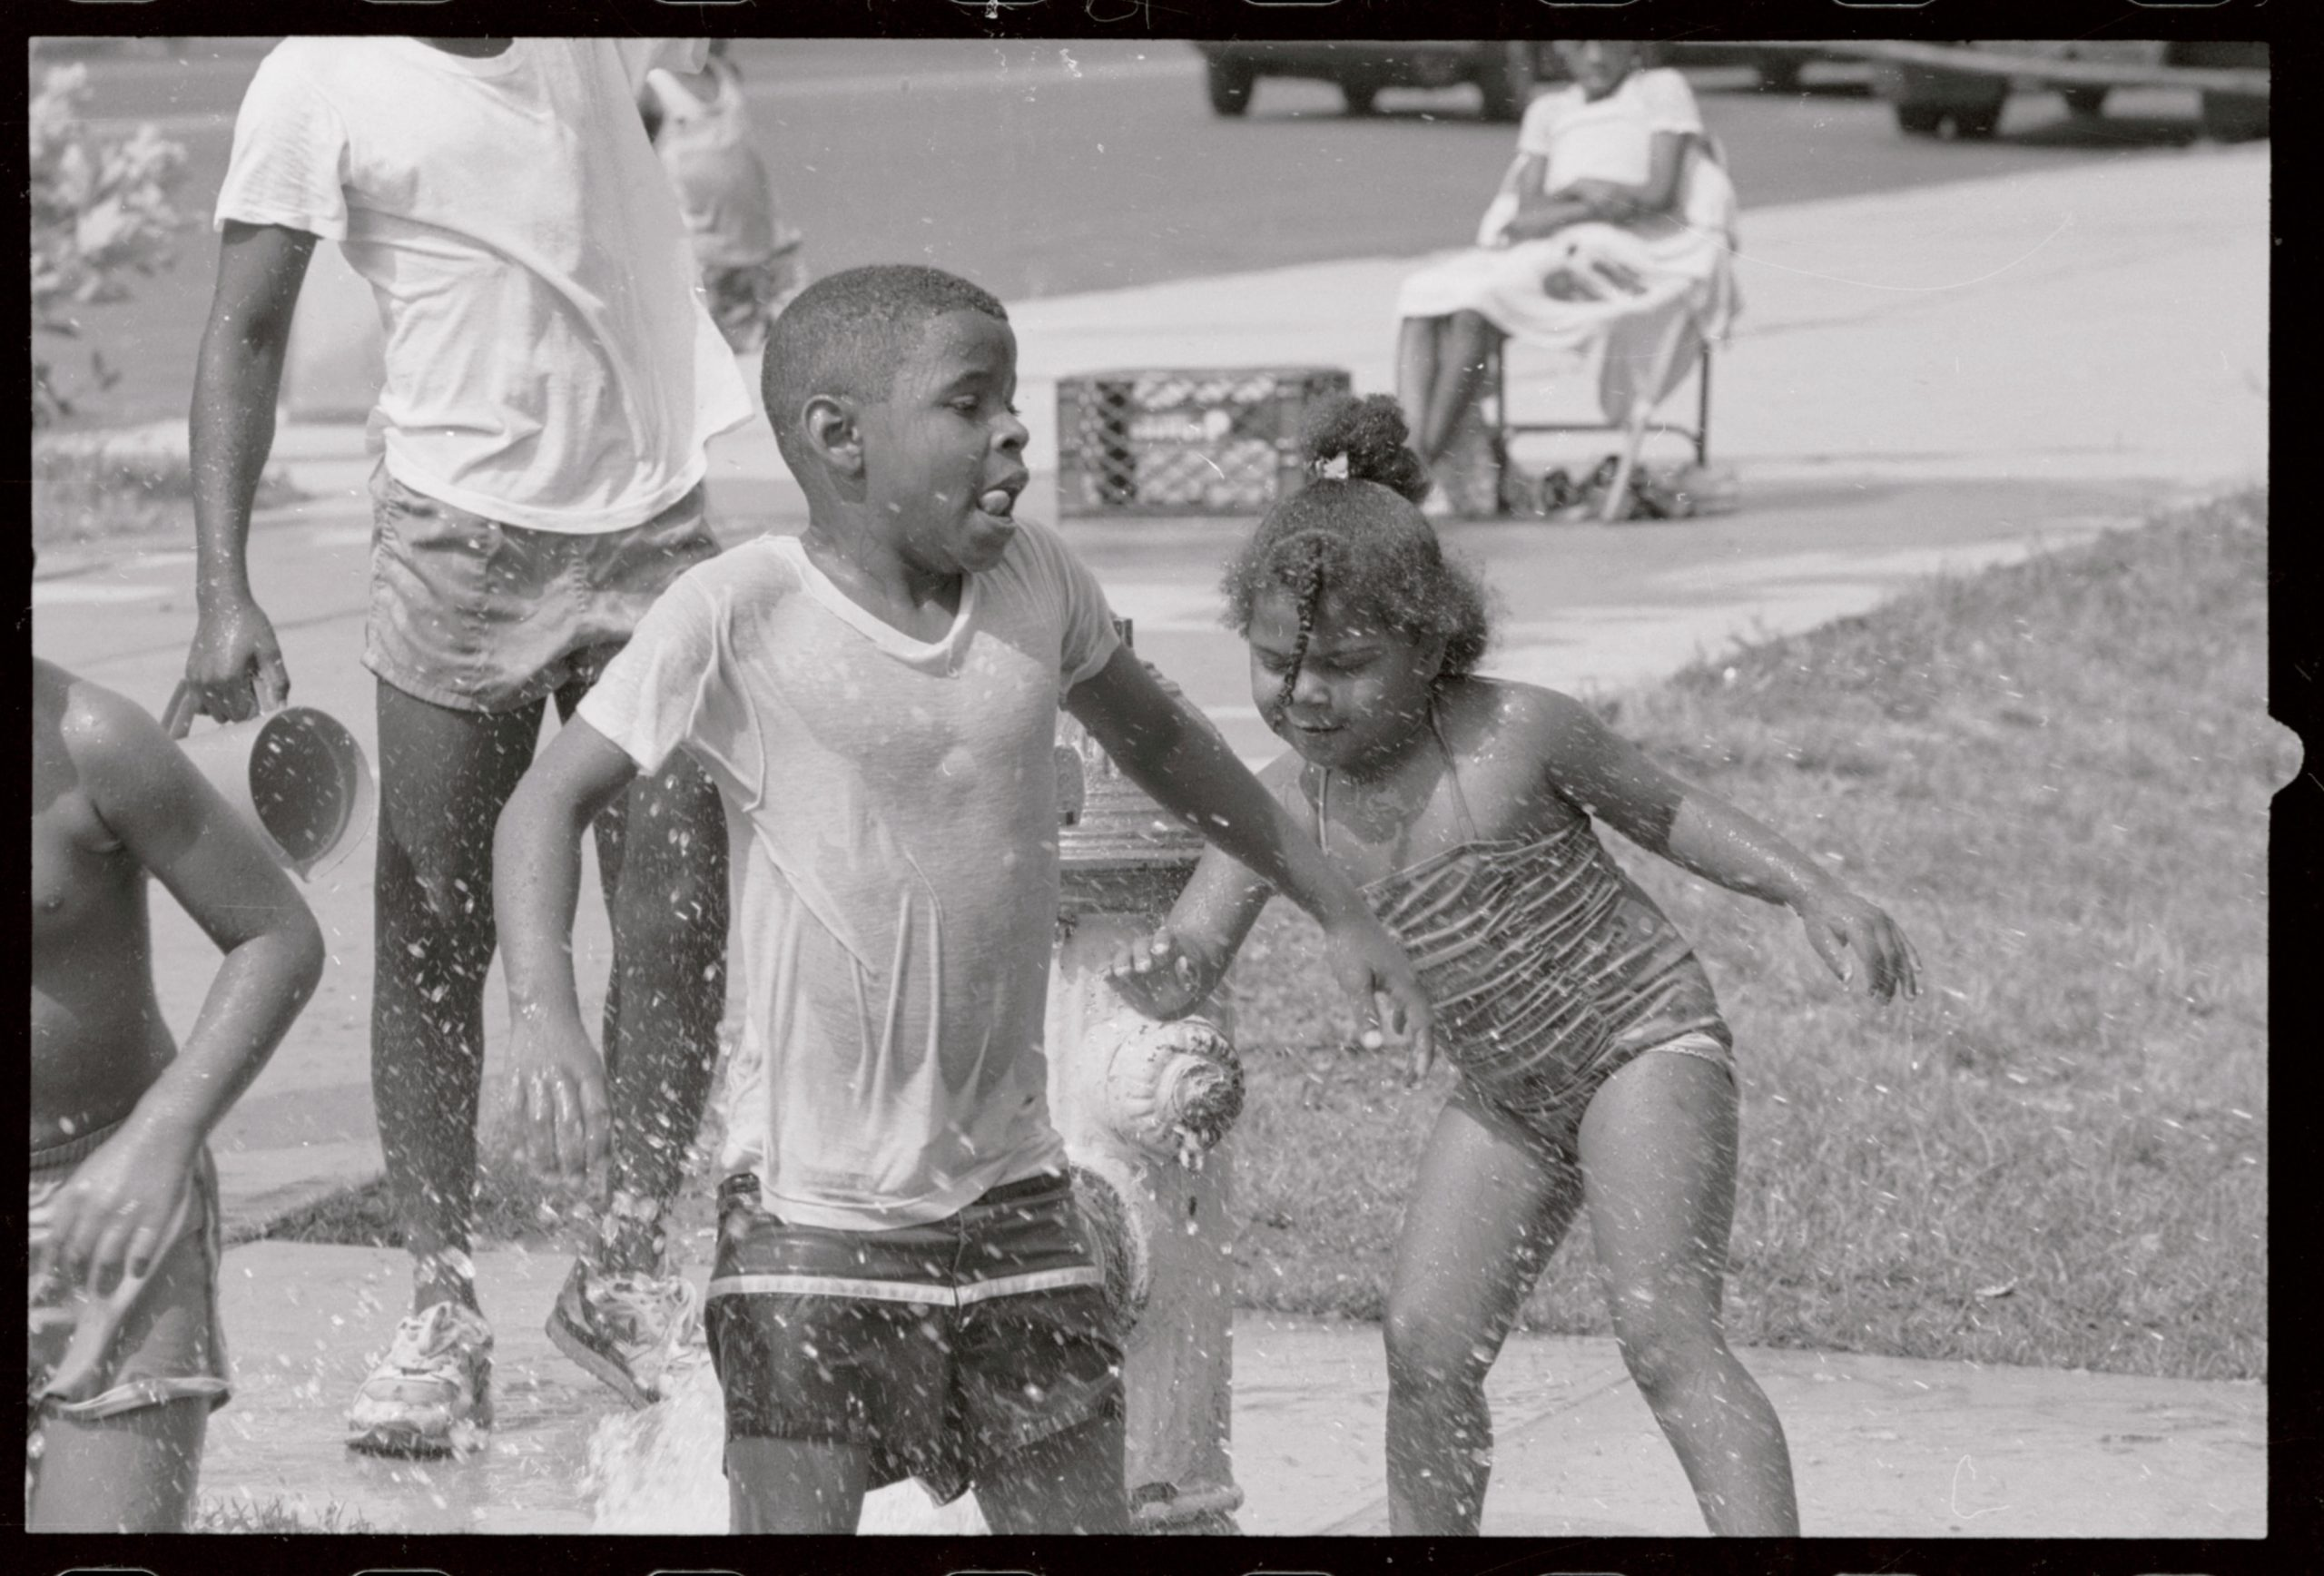 Children play in water from a hydrant in Newark, New Jersey, during the United States' 1988 heatwave.